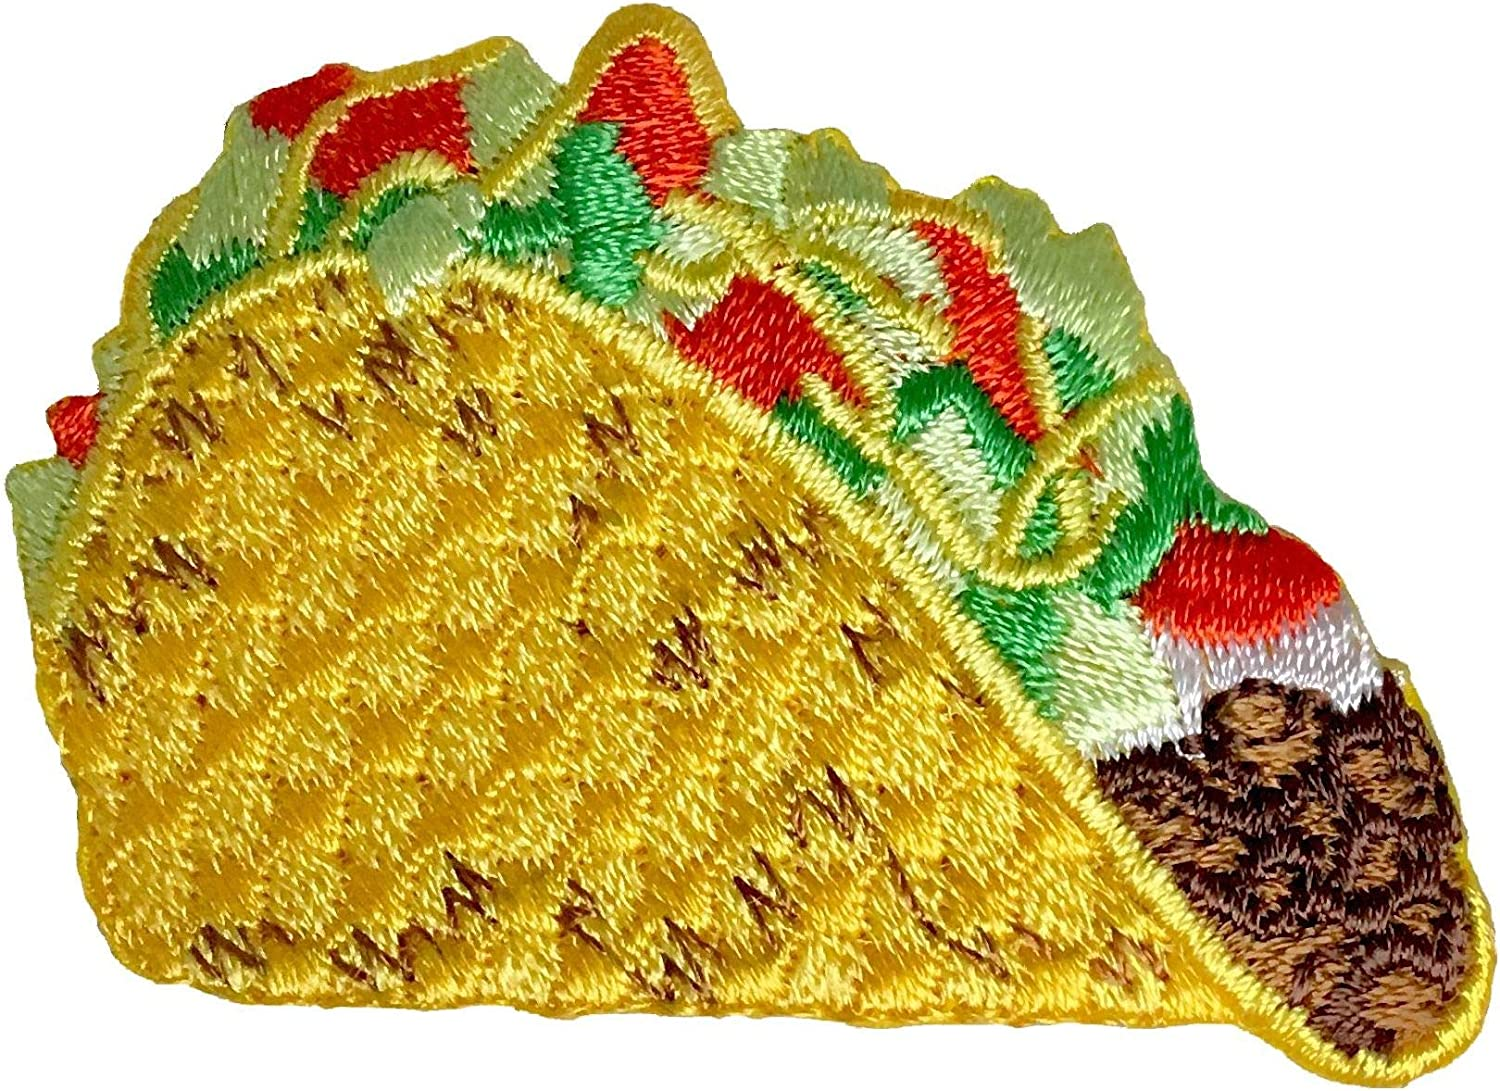 Taco Supreme - Picnic - Tex-Mex/Mexican Food - Embroidered Iron on Patch